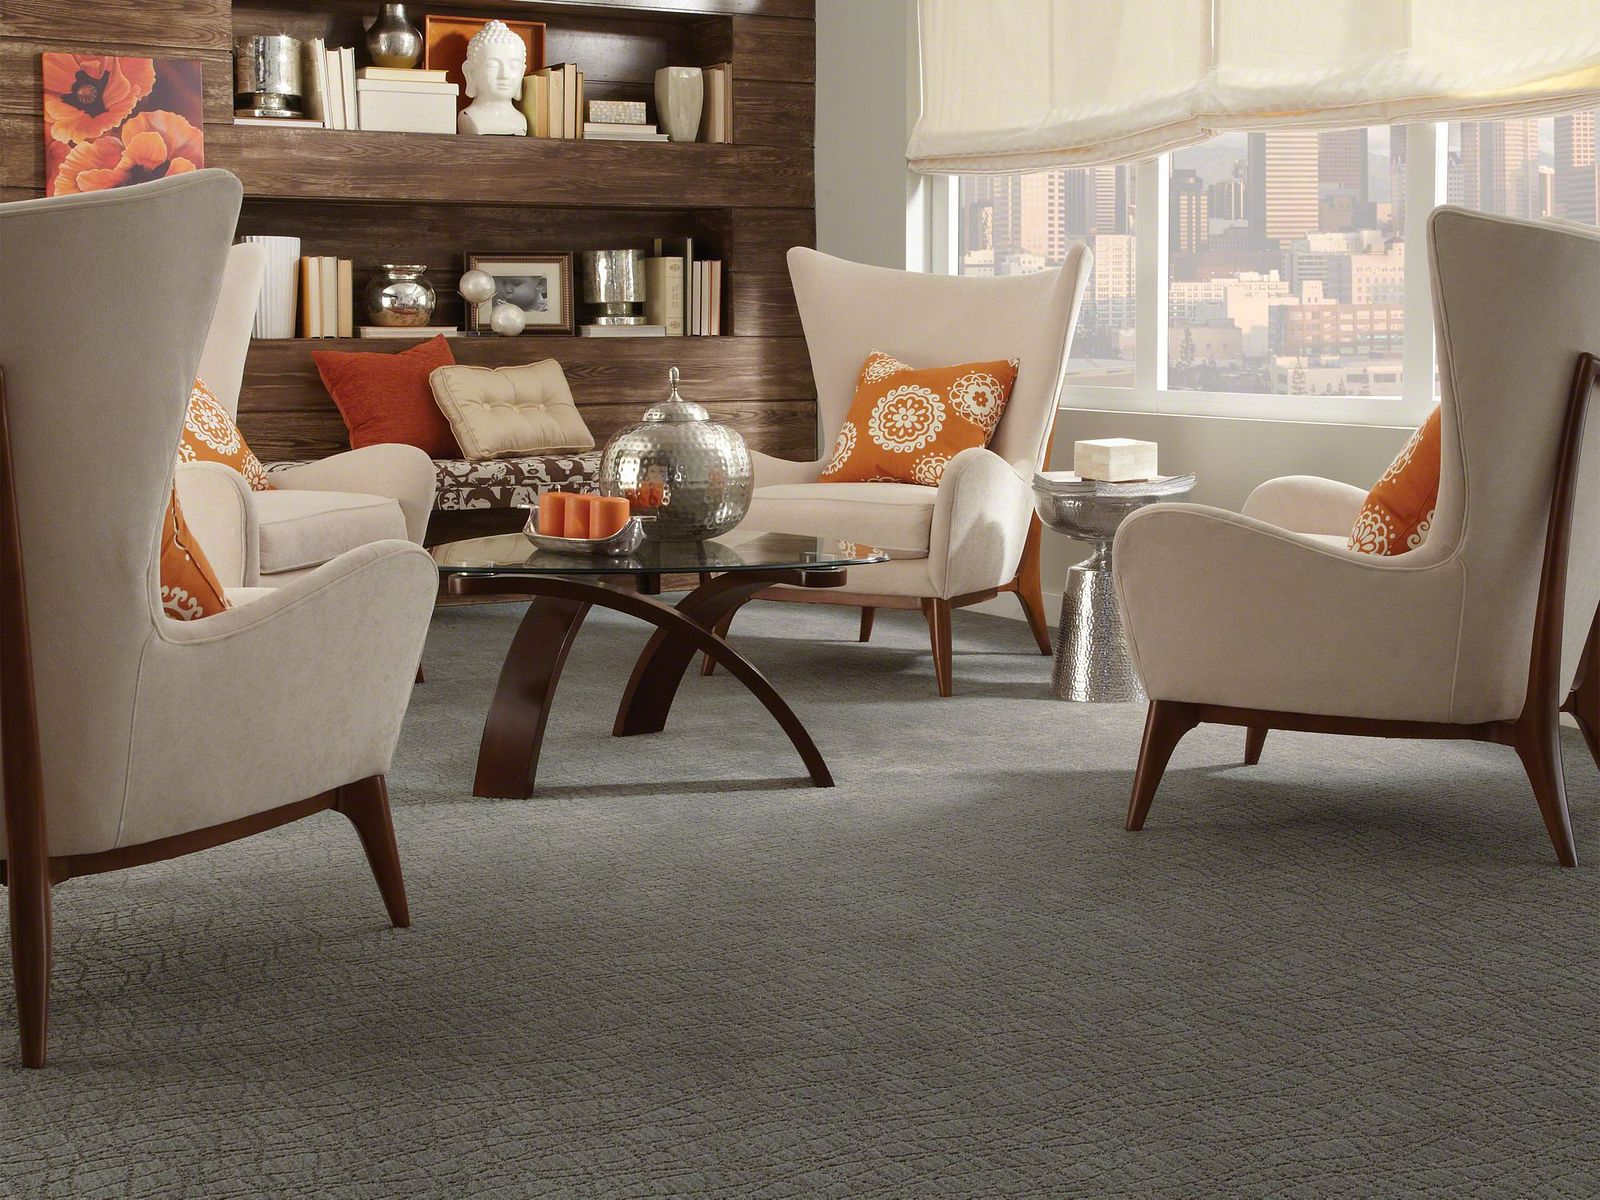 Z6869 00555 carpet Room Scene